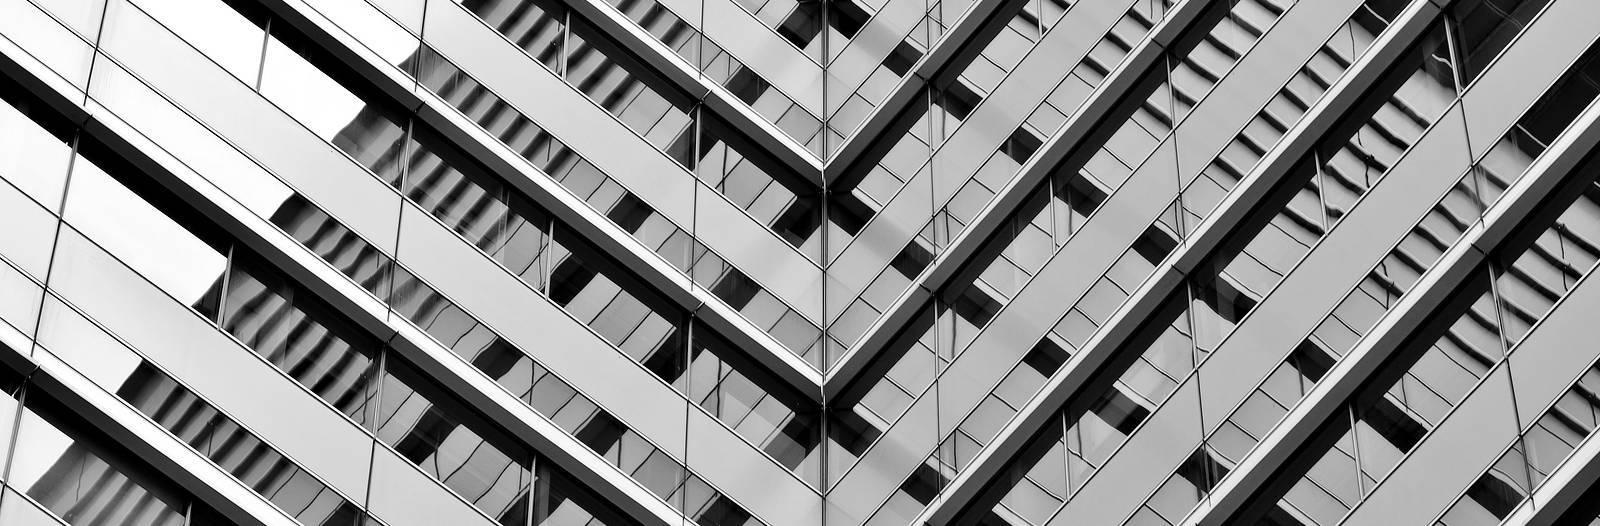 Perspective view of skyscrapper windows for governance software solutions and cyber security systems & risk and compliance solutions by Strata Security Solutions